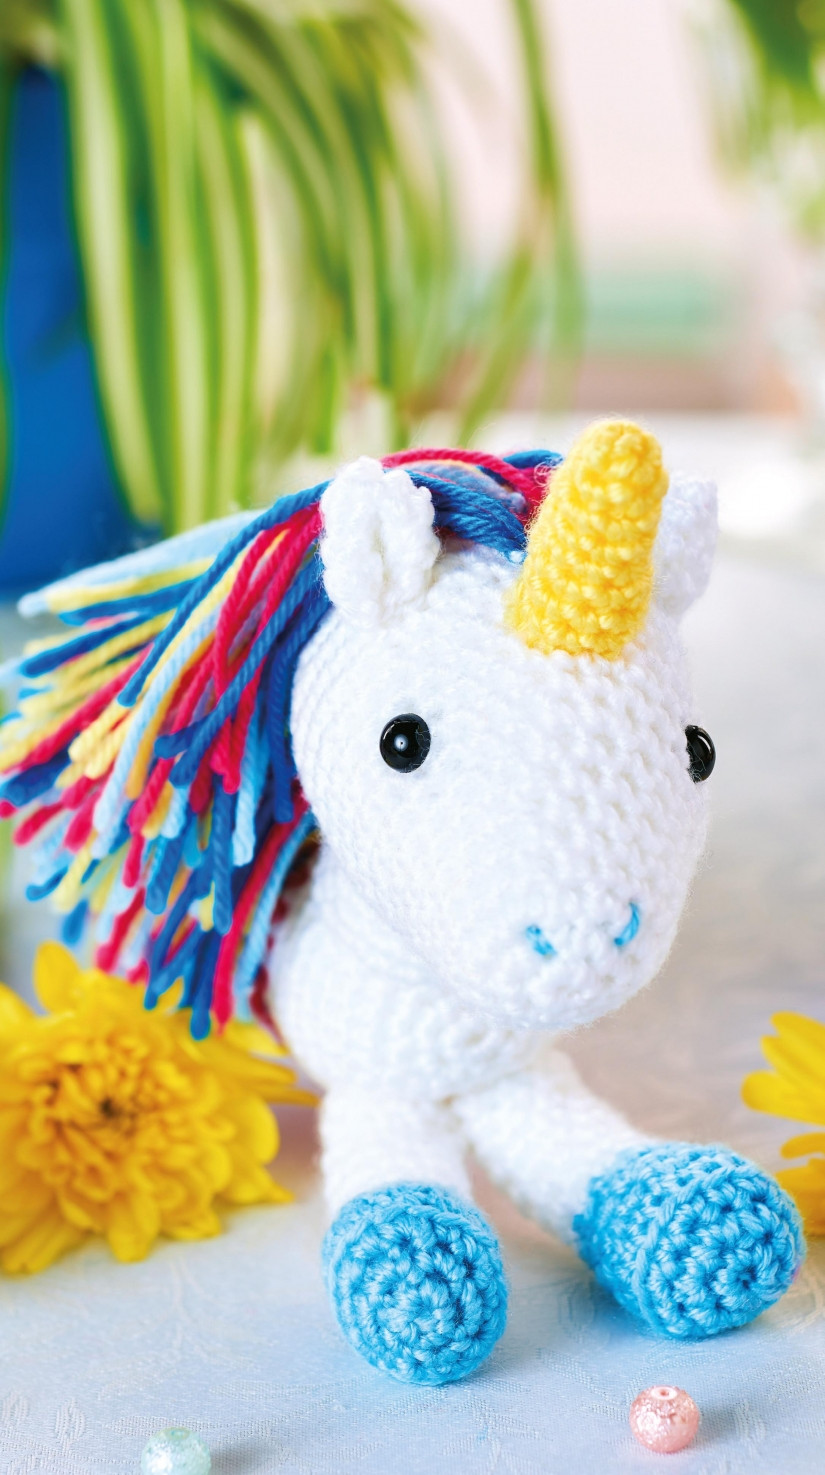 Free Unicorn Crochet Pattern Unique 100 S Free Crochet Patterns Page 1 Of Free Unicorn Crochet Pattern Unique Dada Neon Crochet Tiny Rainbow Unicorn Amigurumi by